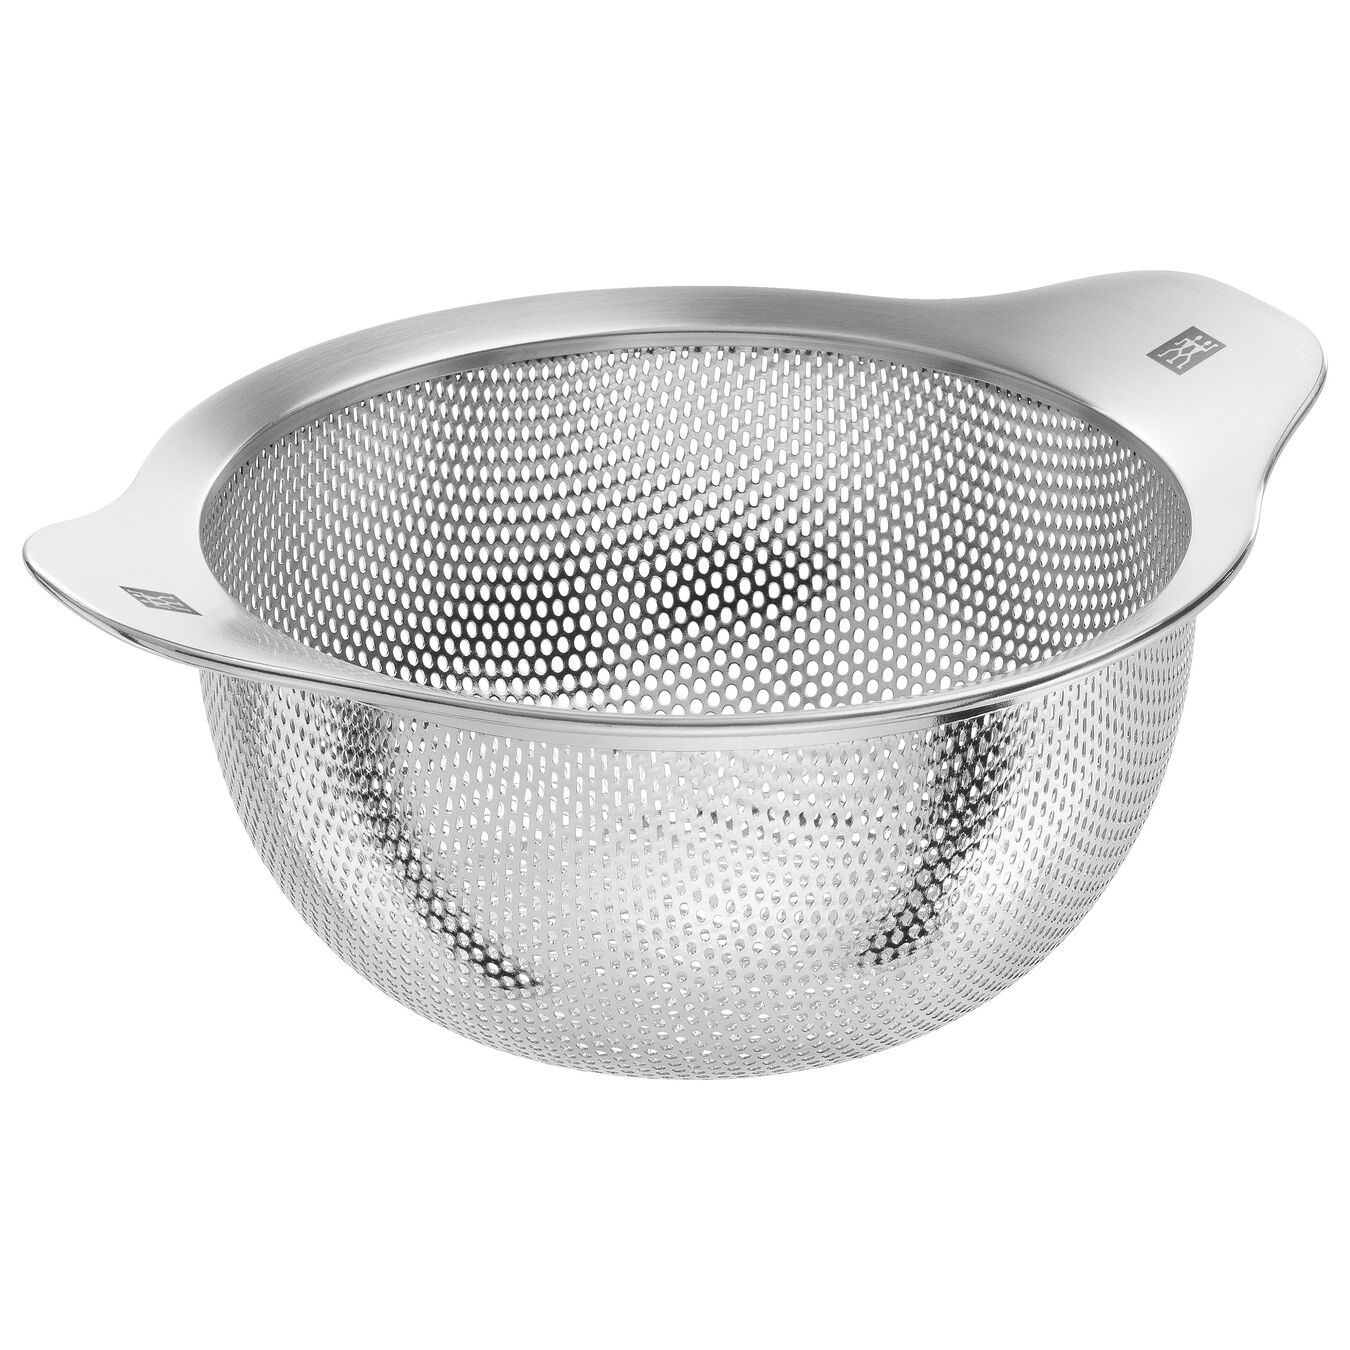 7-inch Colander, 18/10 Stainless Steel ,,large 1